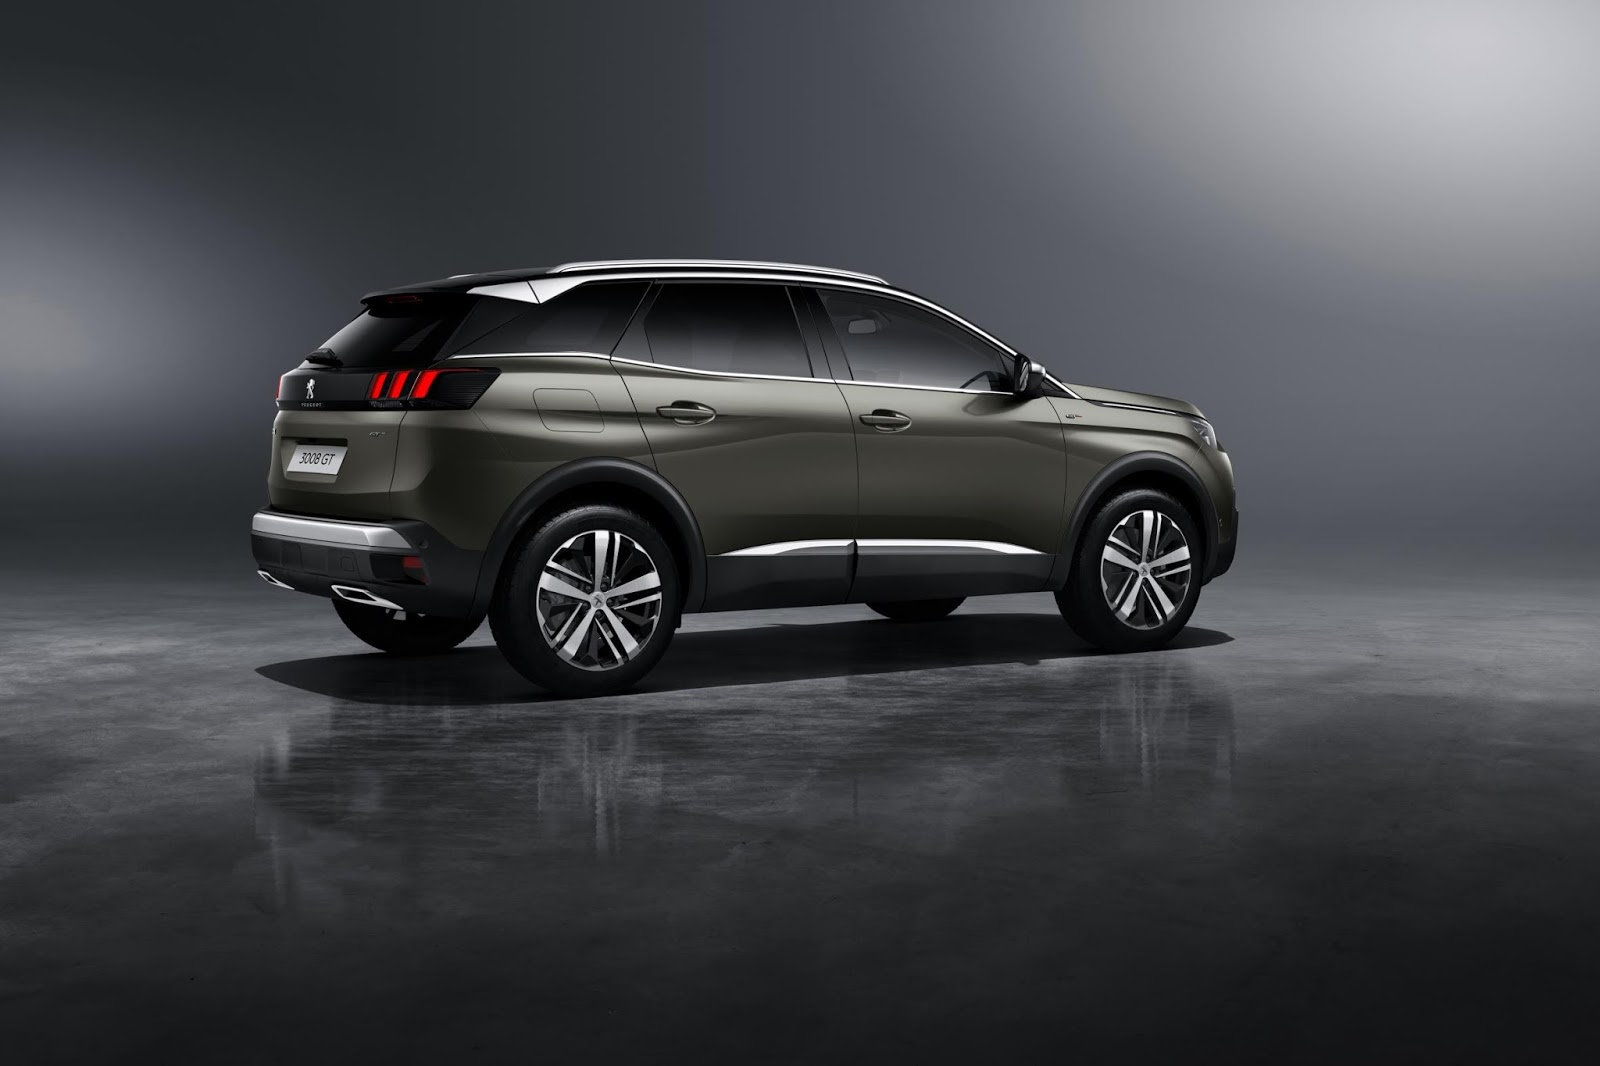 The Motoring World: The All-New Peugeot 3008, The Capable